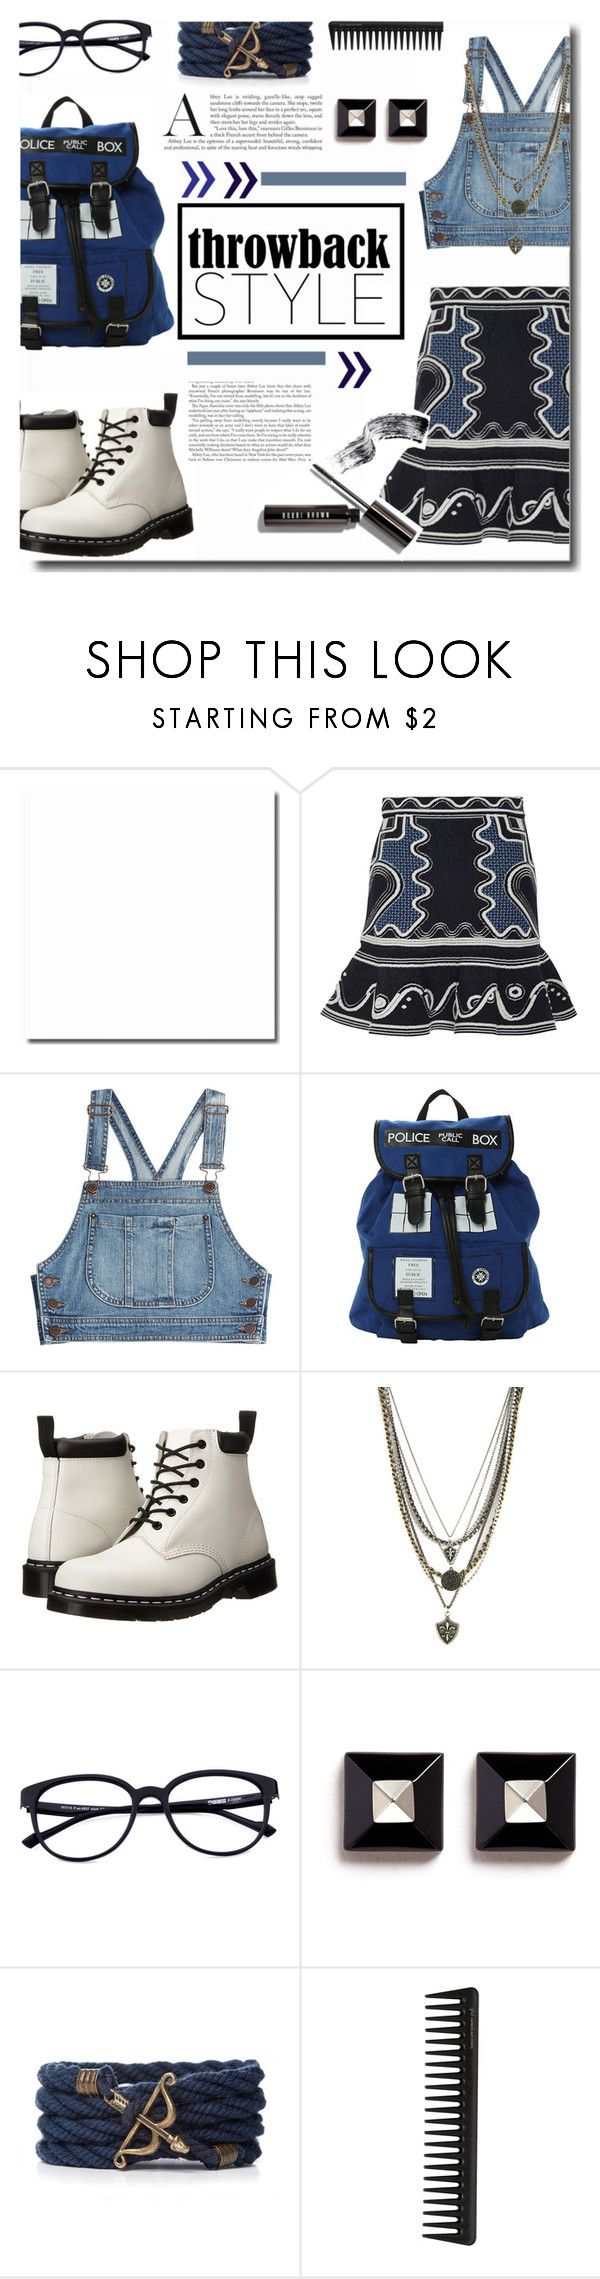 """""""Sassy Girl Style"""" by kts-desilva ❤ liked on Polyvore featuring moda, Peter Pilotto, Moschino, Dr. Martens, Ettika, Givenchy, GHD i throwbackstyle"""